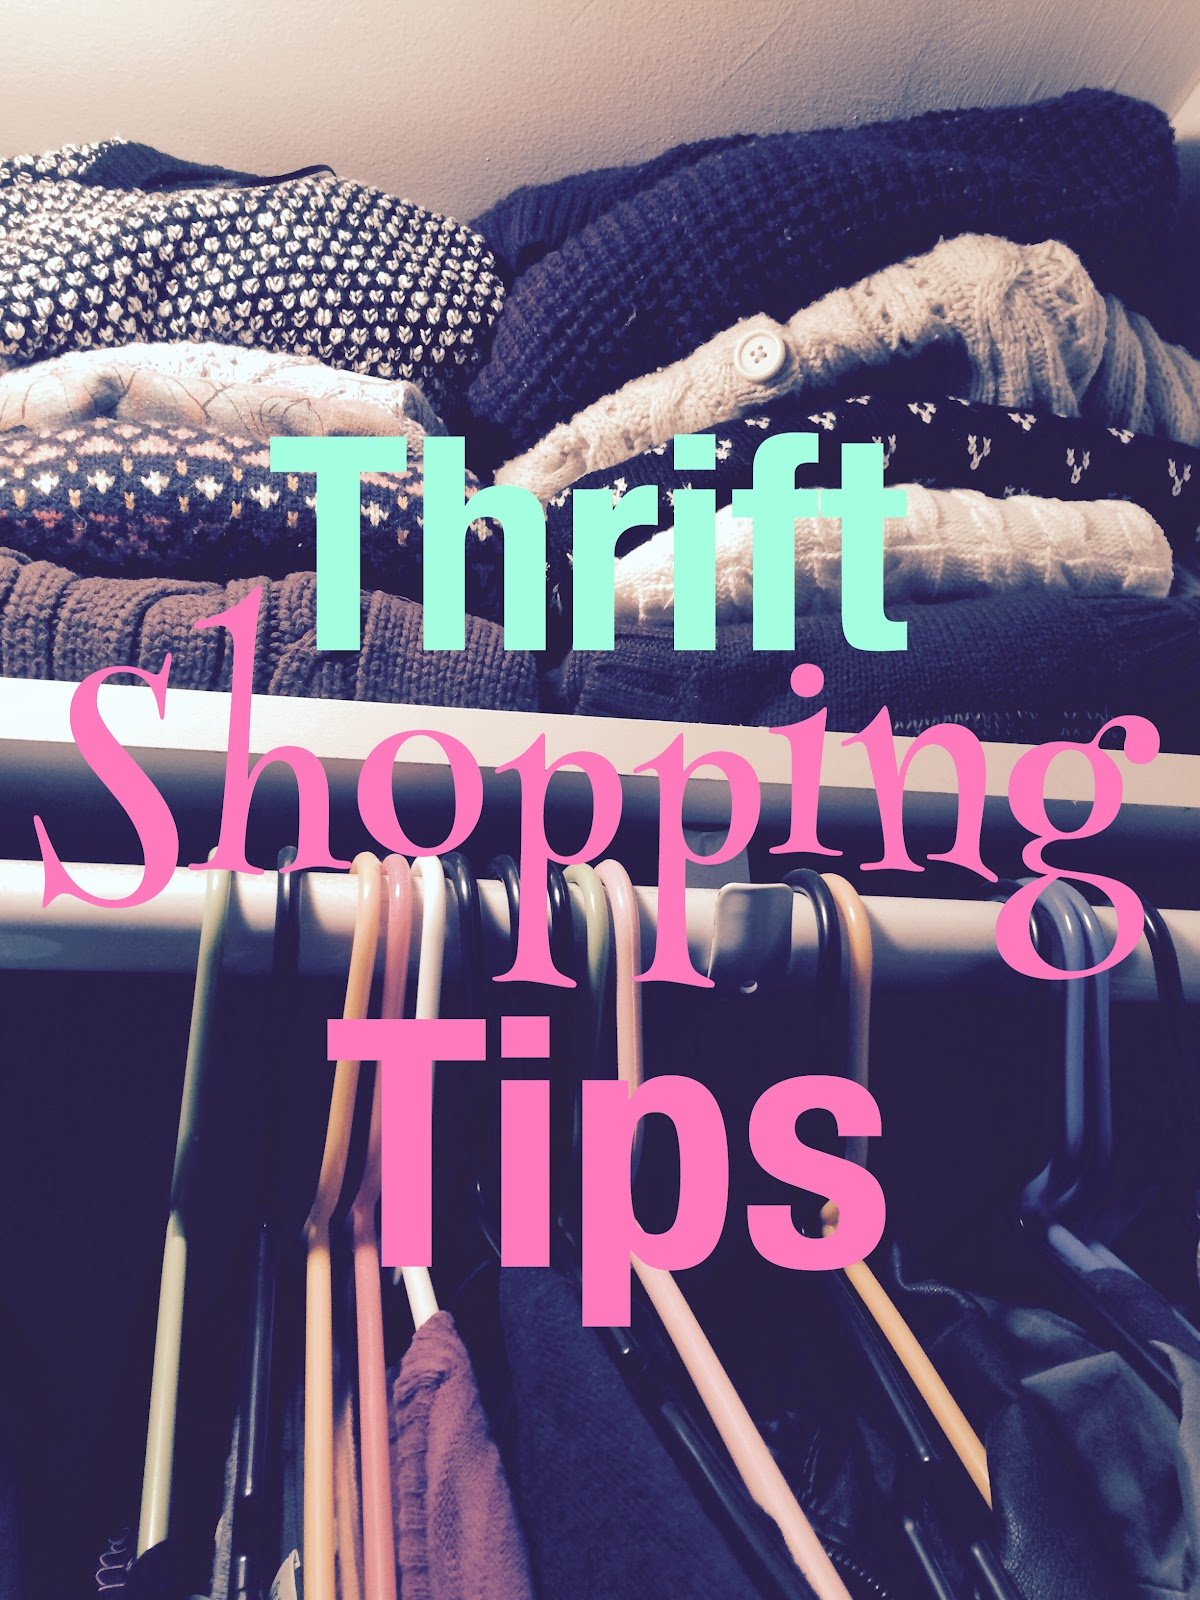 Thrift shopping tips